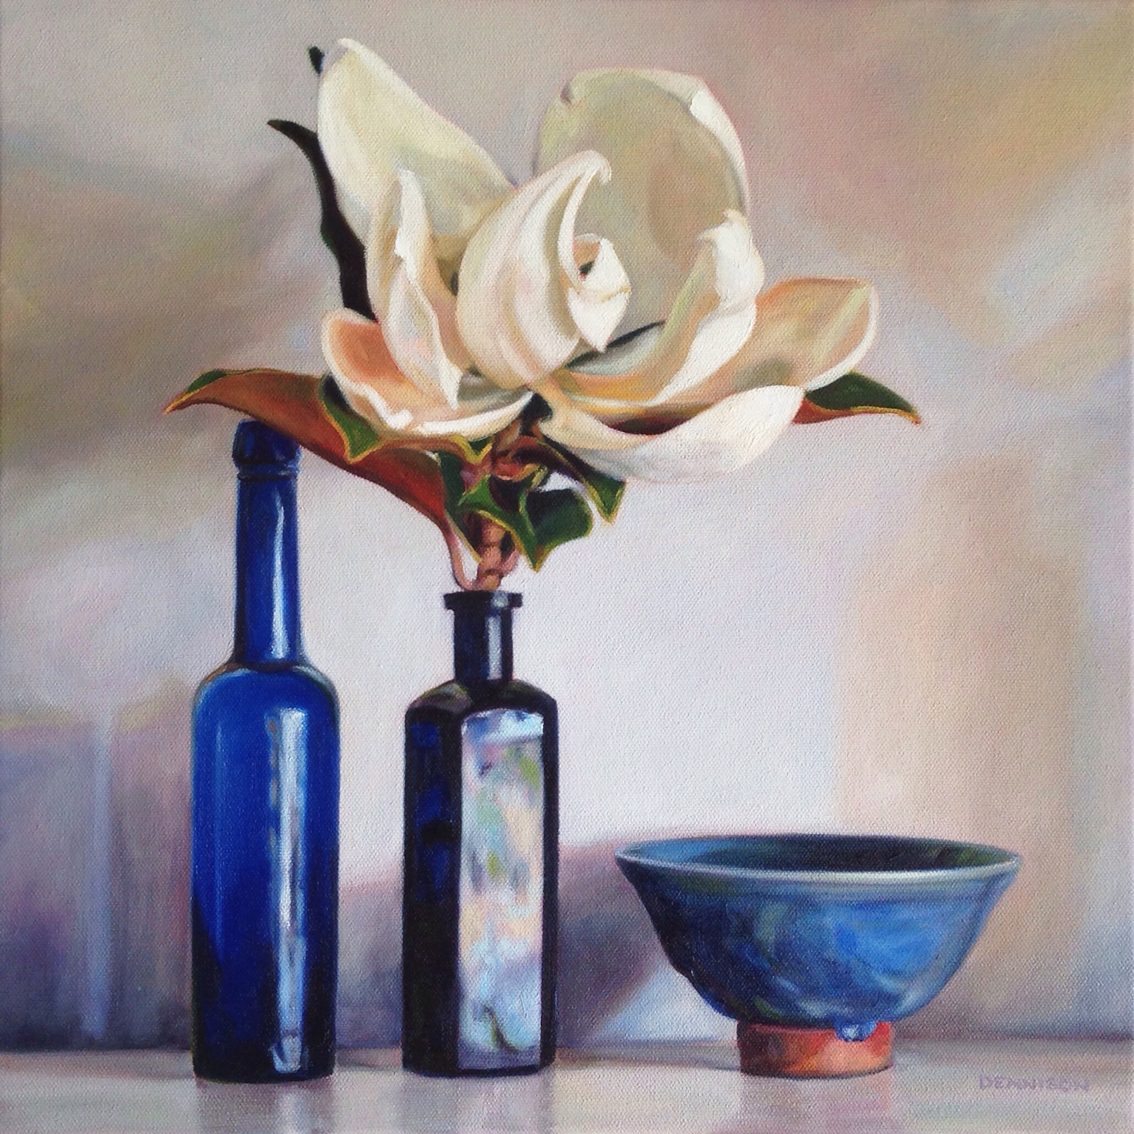 Still Life with Little Gem Magnolia and Blue Bottles   Oil on Canvas, 41cm x 41cm